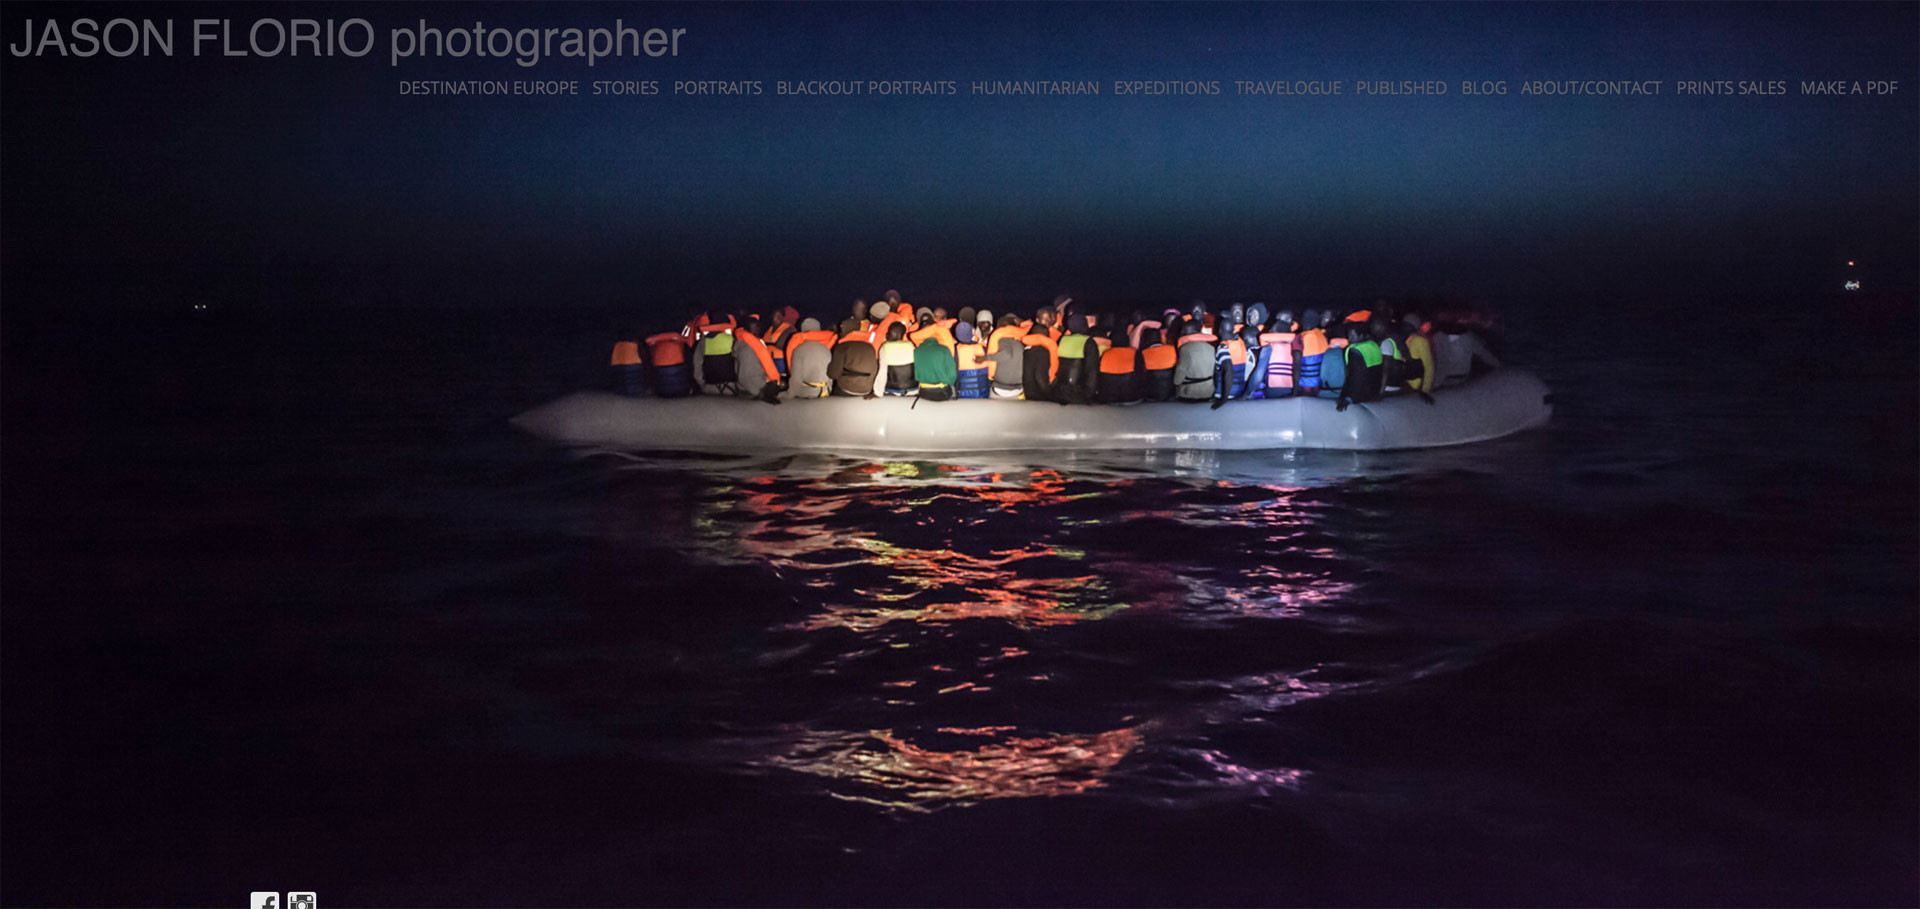 Jason Florios new website live! Migrants spotted in a dinghy in the Mediterranean Sea at night, post-rescue by MOAS NGO